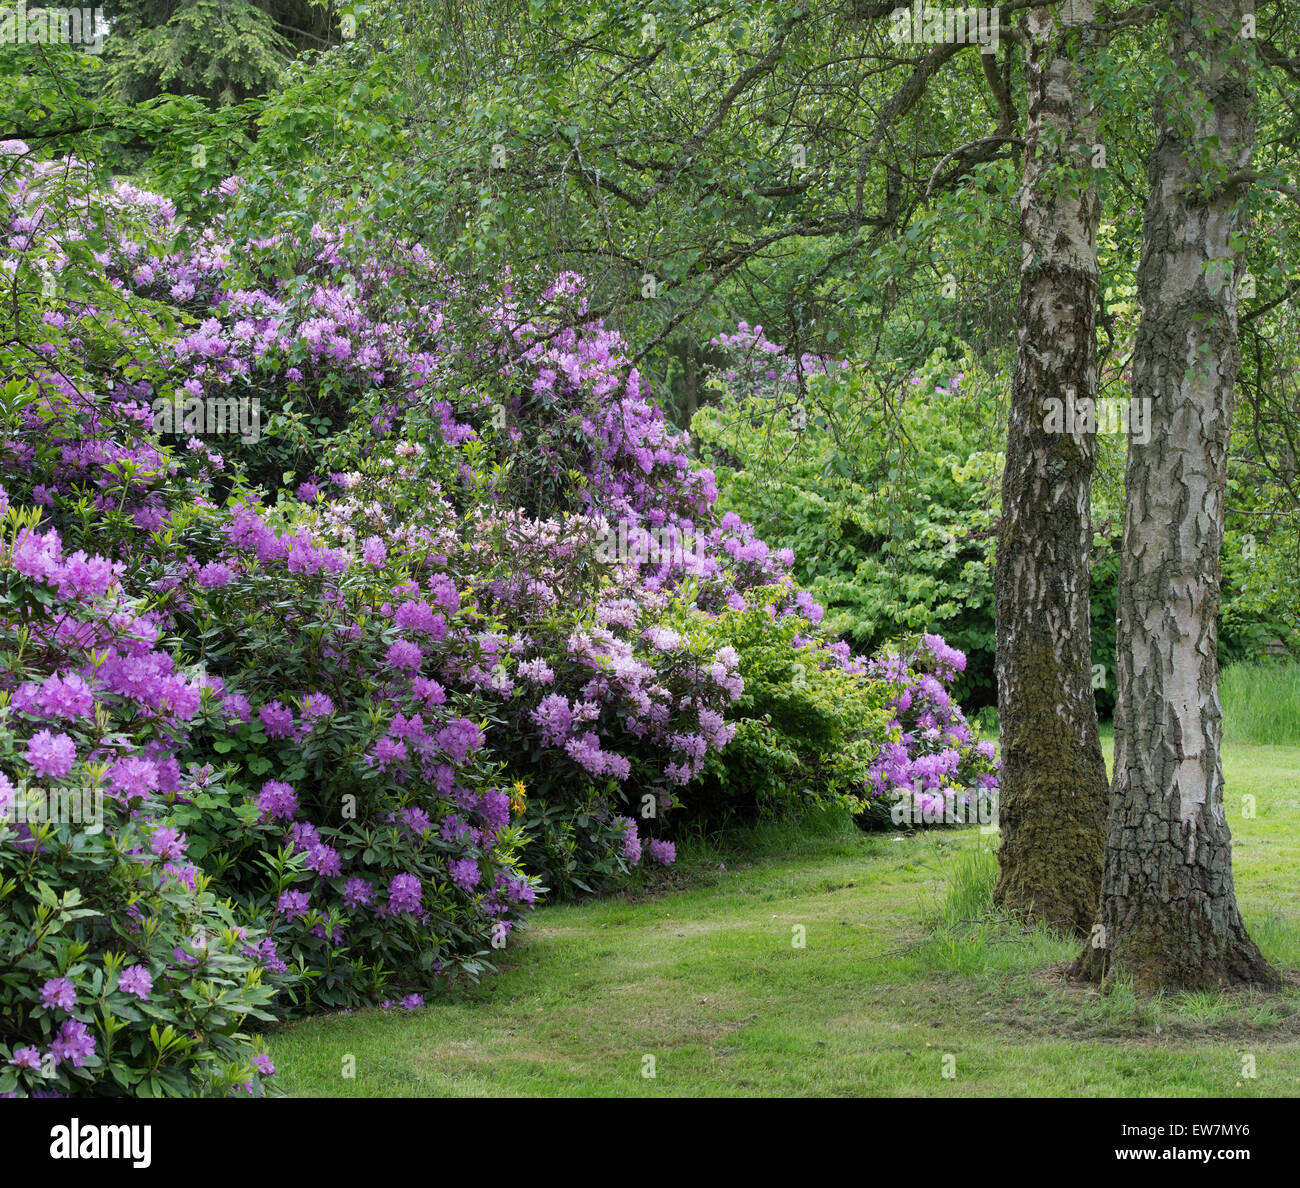 Rhododendron bushes in flower in an English Garden - Stock Image